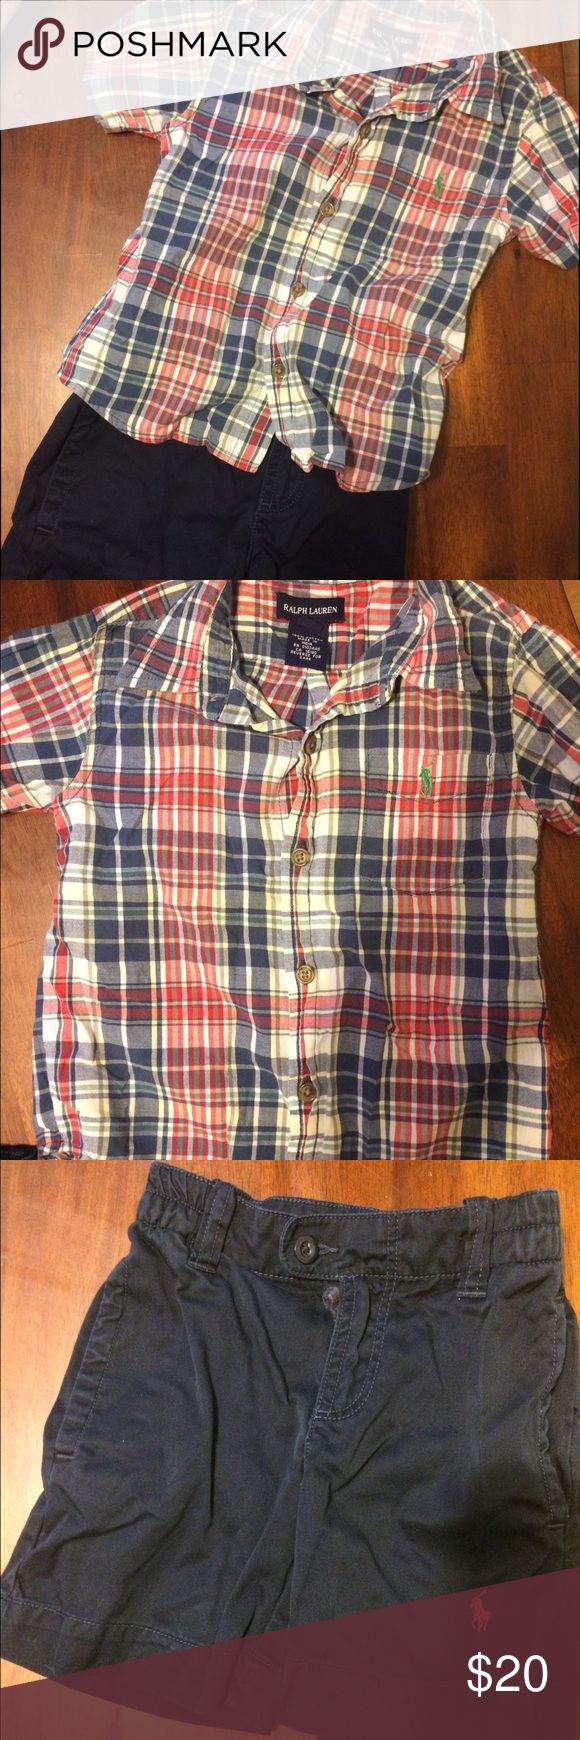 Two piece Ralph Lauren summer set! Two piece Ralph Lauren summer outfit.  Thin plaid collars shirt with blue shorts. Single back pocket on bottoms. No stains or rips. Ralph Lauren Matching Sets